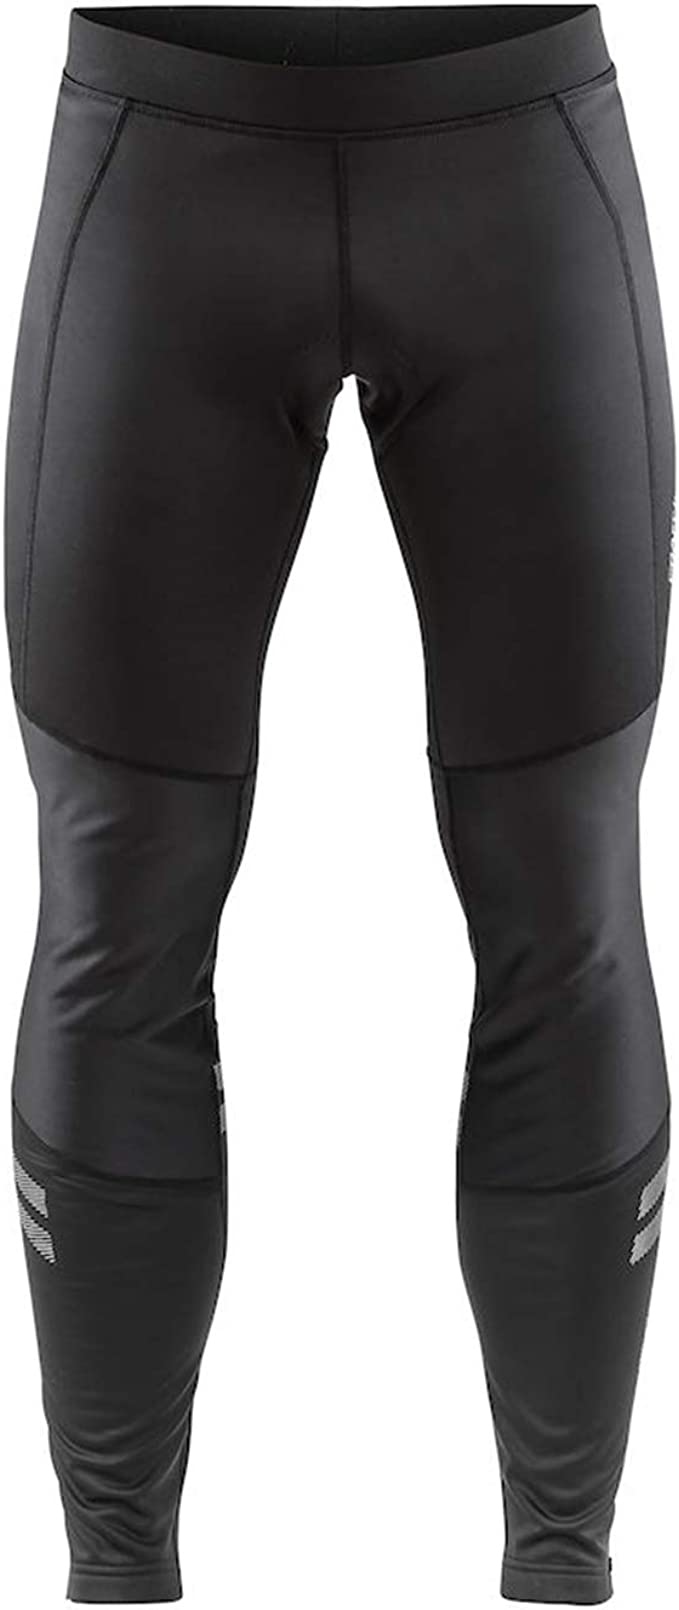 Craft Homme Vent Tights idéal